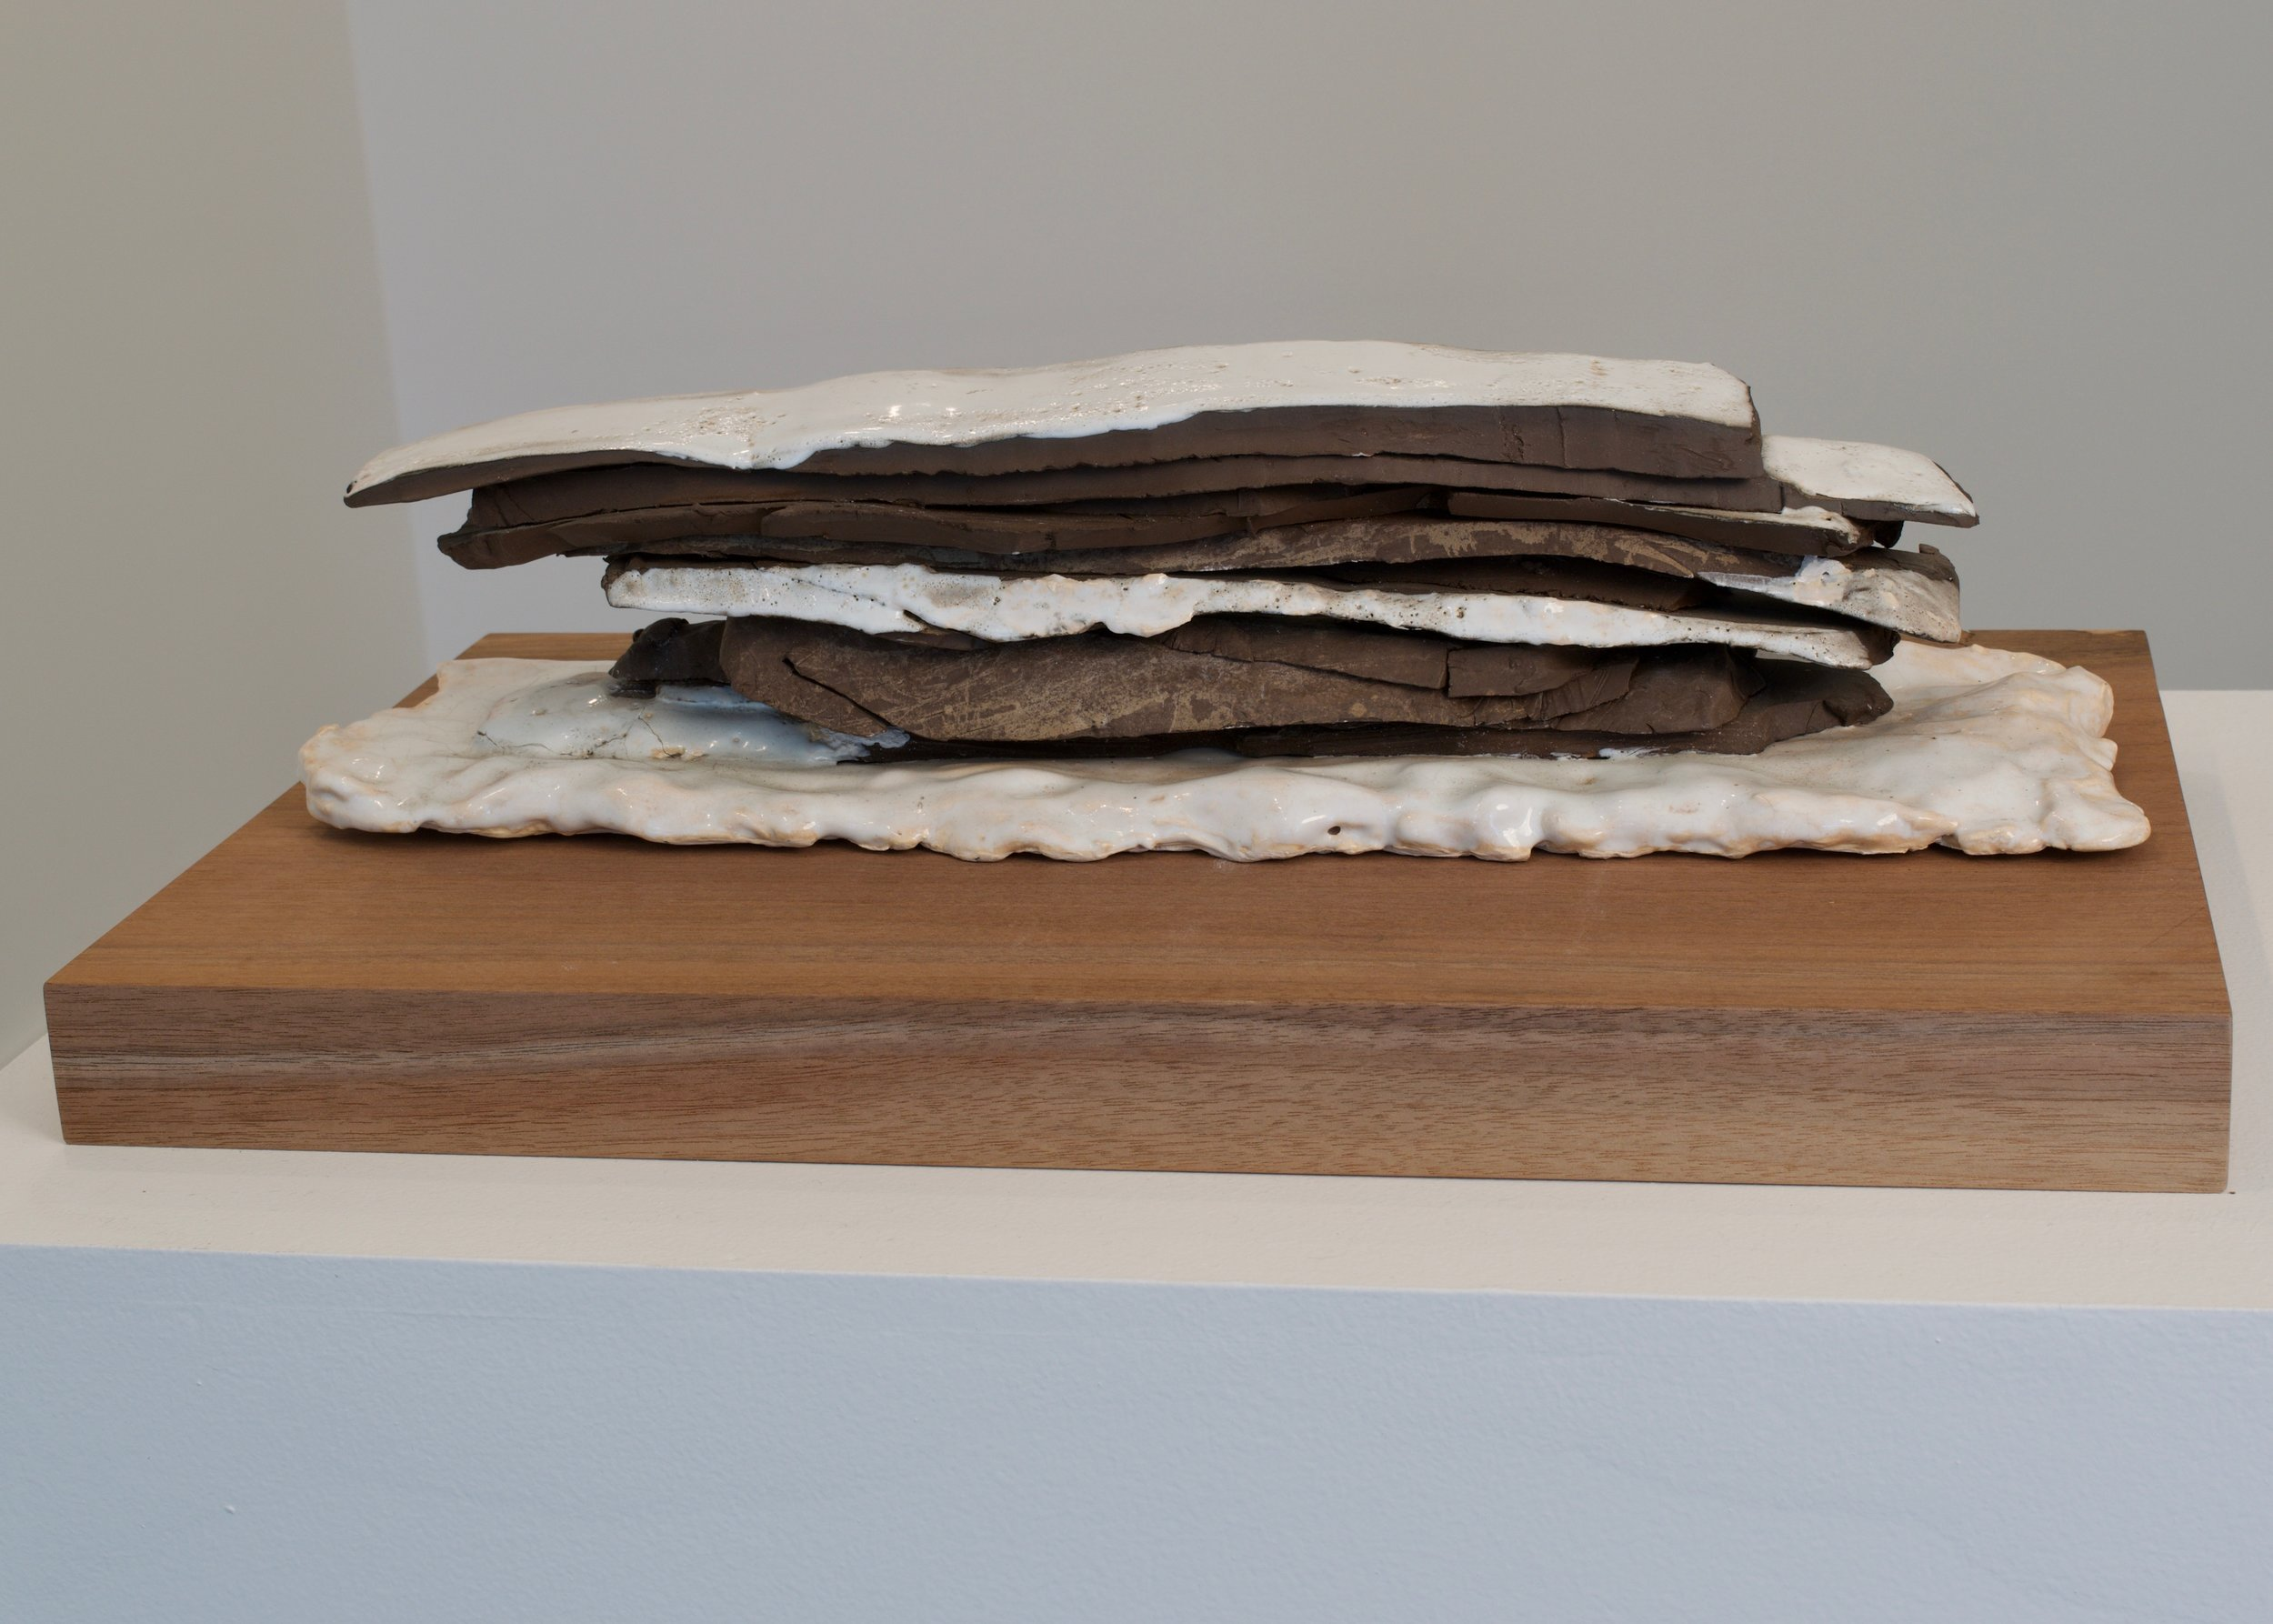 Katia Ramsey-Read, Wood Pile in Snow, 2019. Glaced Stoneware and Terra Cotta on Wood, 18 ½ x 5 ½ x 4 ½  inches